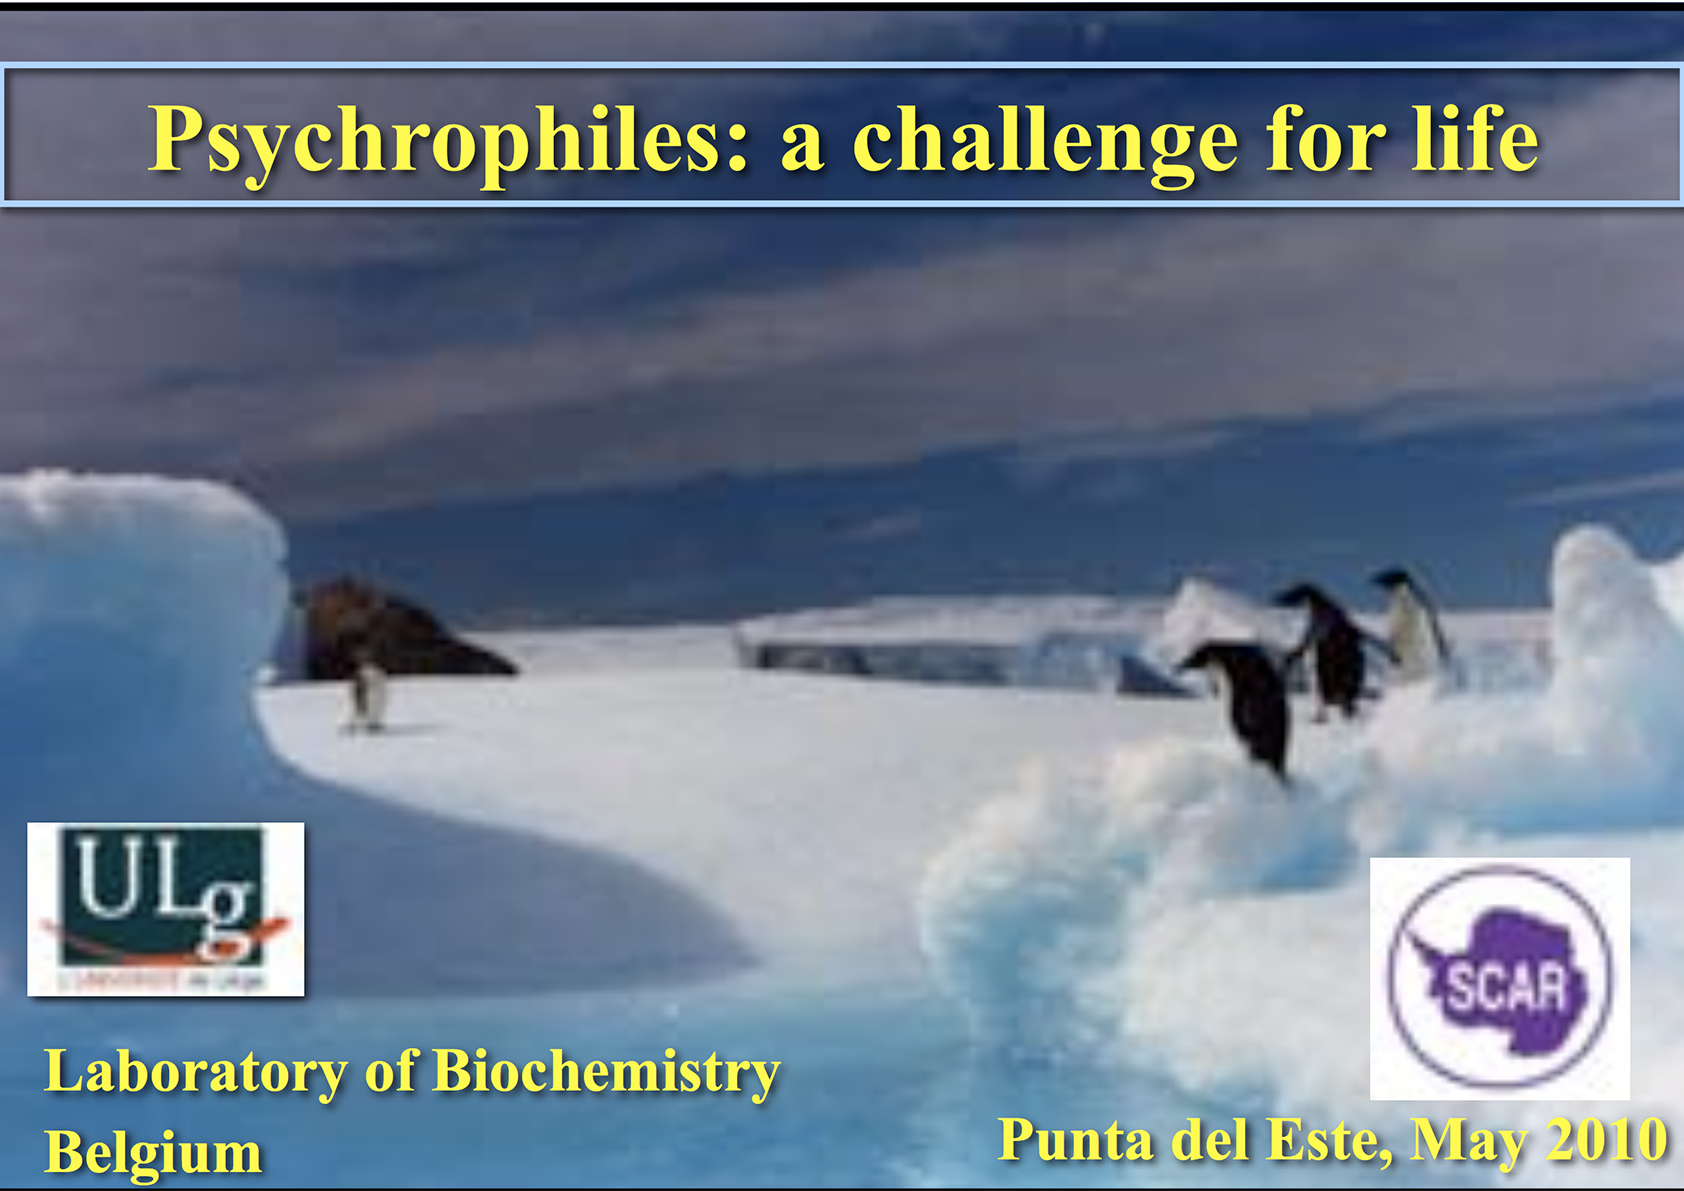 ATT004 to IP003: The SCAR Lecture Psychrophiles: A Challenge for Life (Lecture Slides) (Attachment)